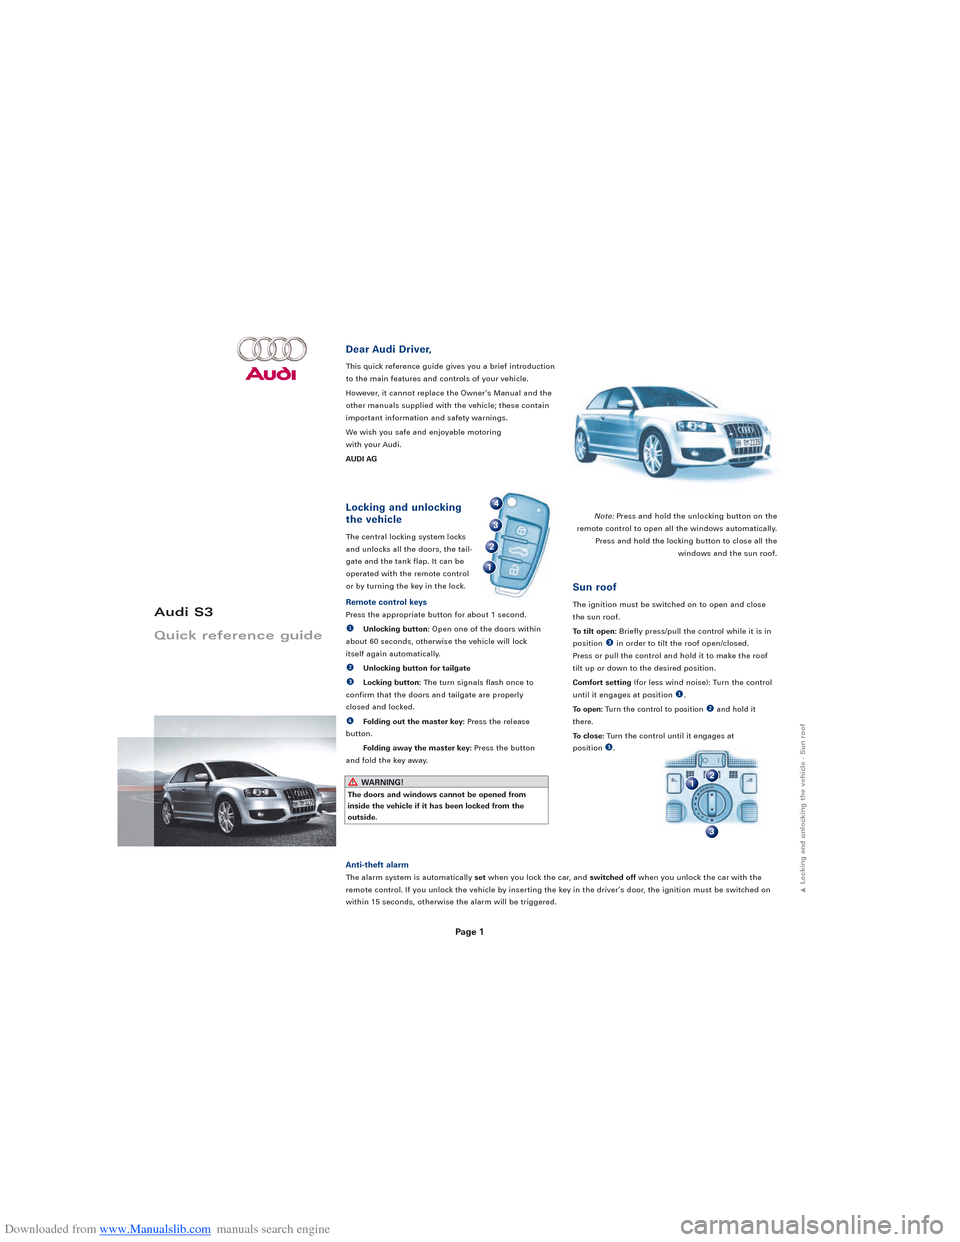 AUDI S3 2008 8P / 2.G Quick Reference Guide Downloaded from www.Manualslib.com manuals search engine Page 1 Audi S3 Quick reference guide Locking and unlocking the vehicle The central locking system locks and unlocks all the doors, the tail- ga